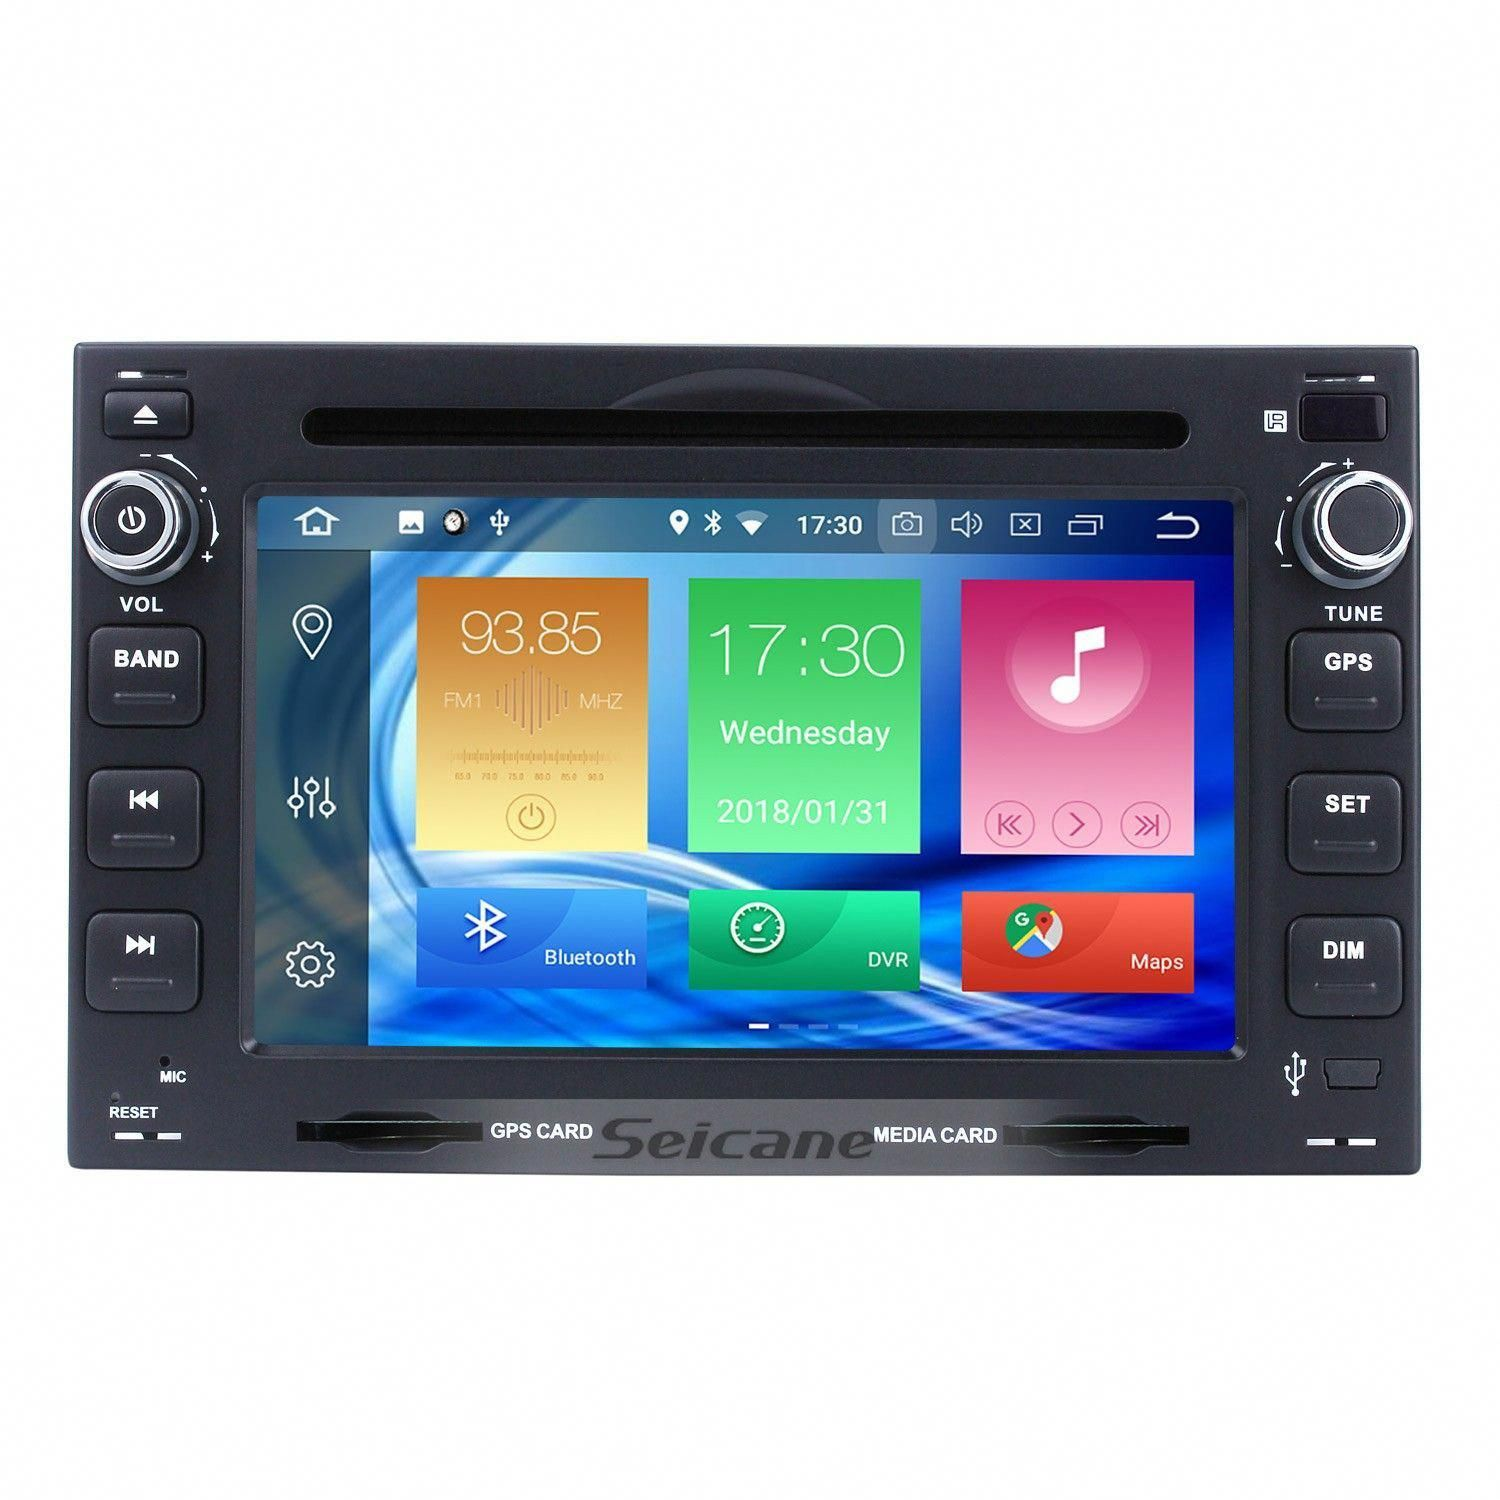 Seicane Aftermarket Radio Android 8.0 6.2 Inch DVD Player